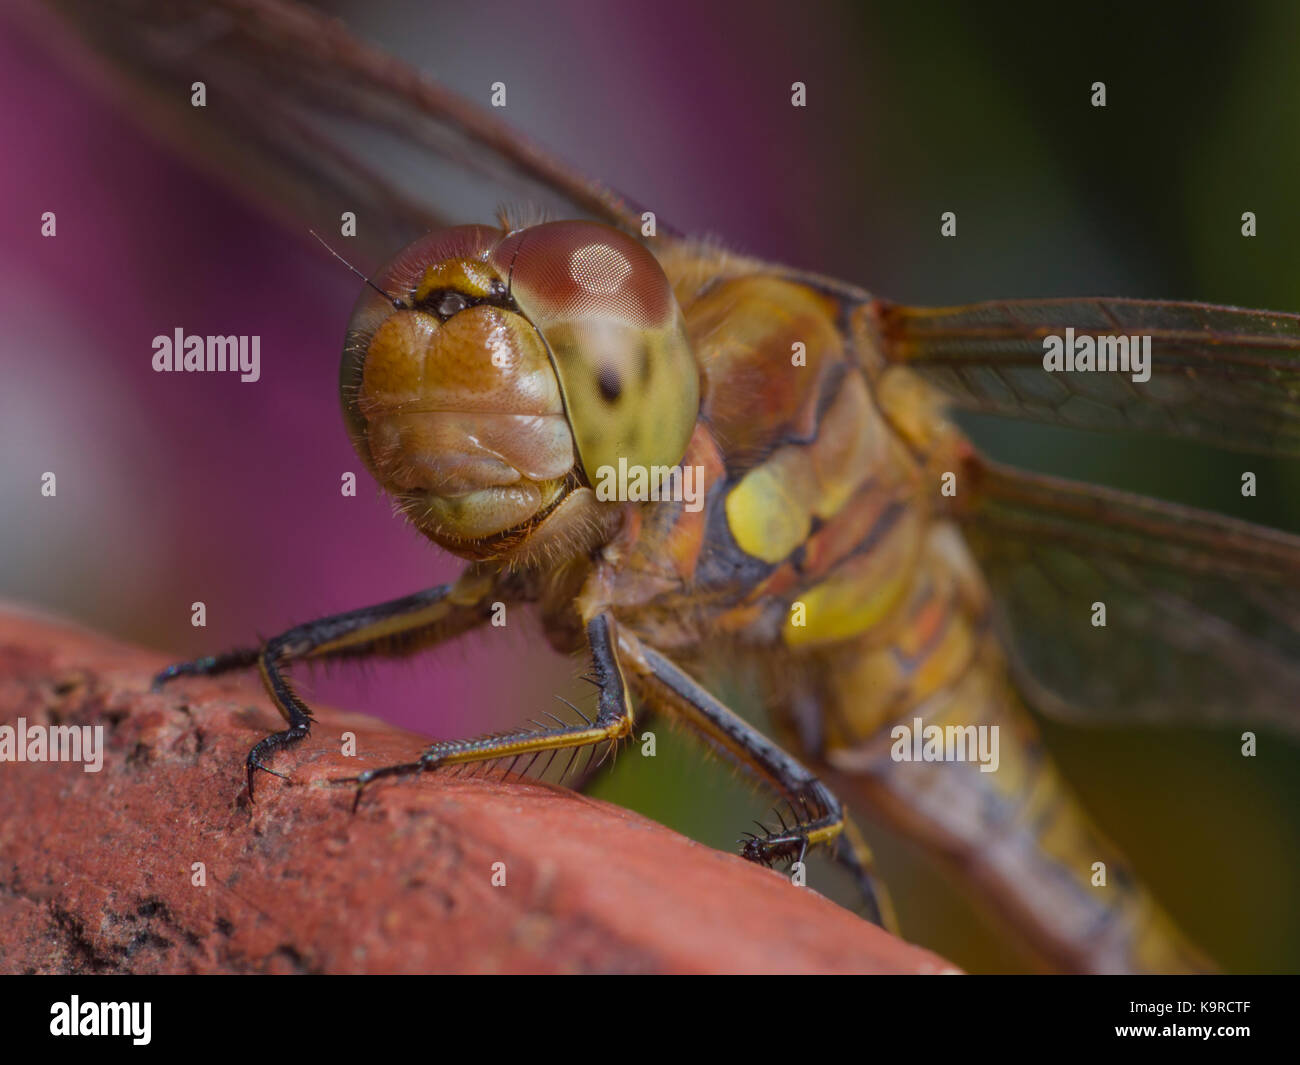 Common ad Ruddy darter Dragonflies showing their colourful multi-celled compound eyes and four wings while at rest. - Stock Image